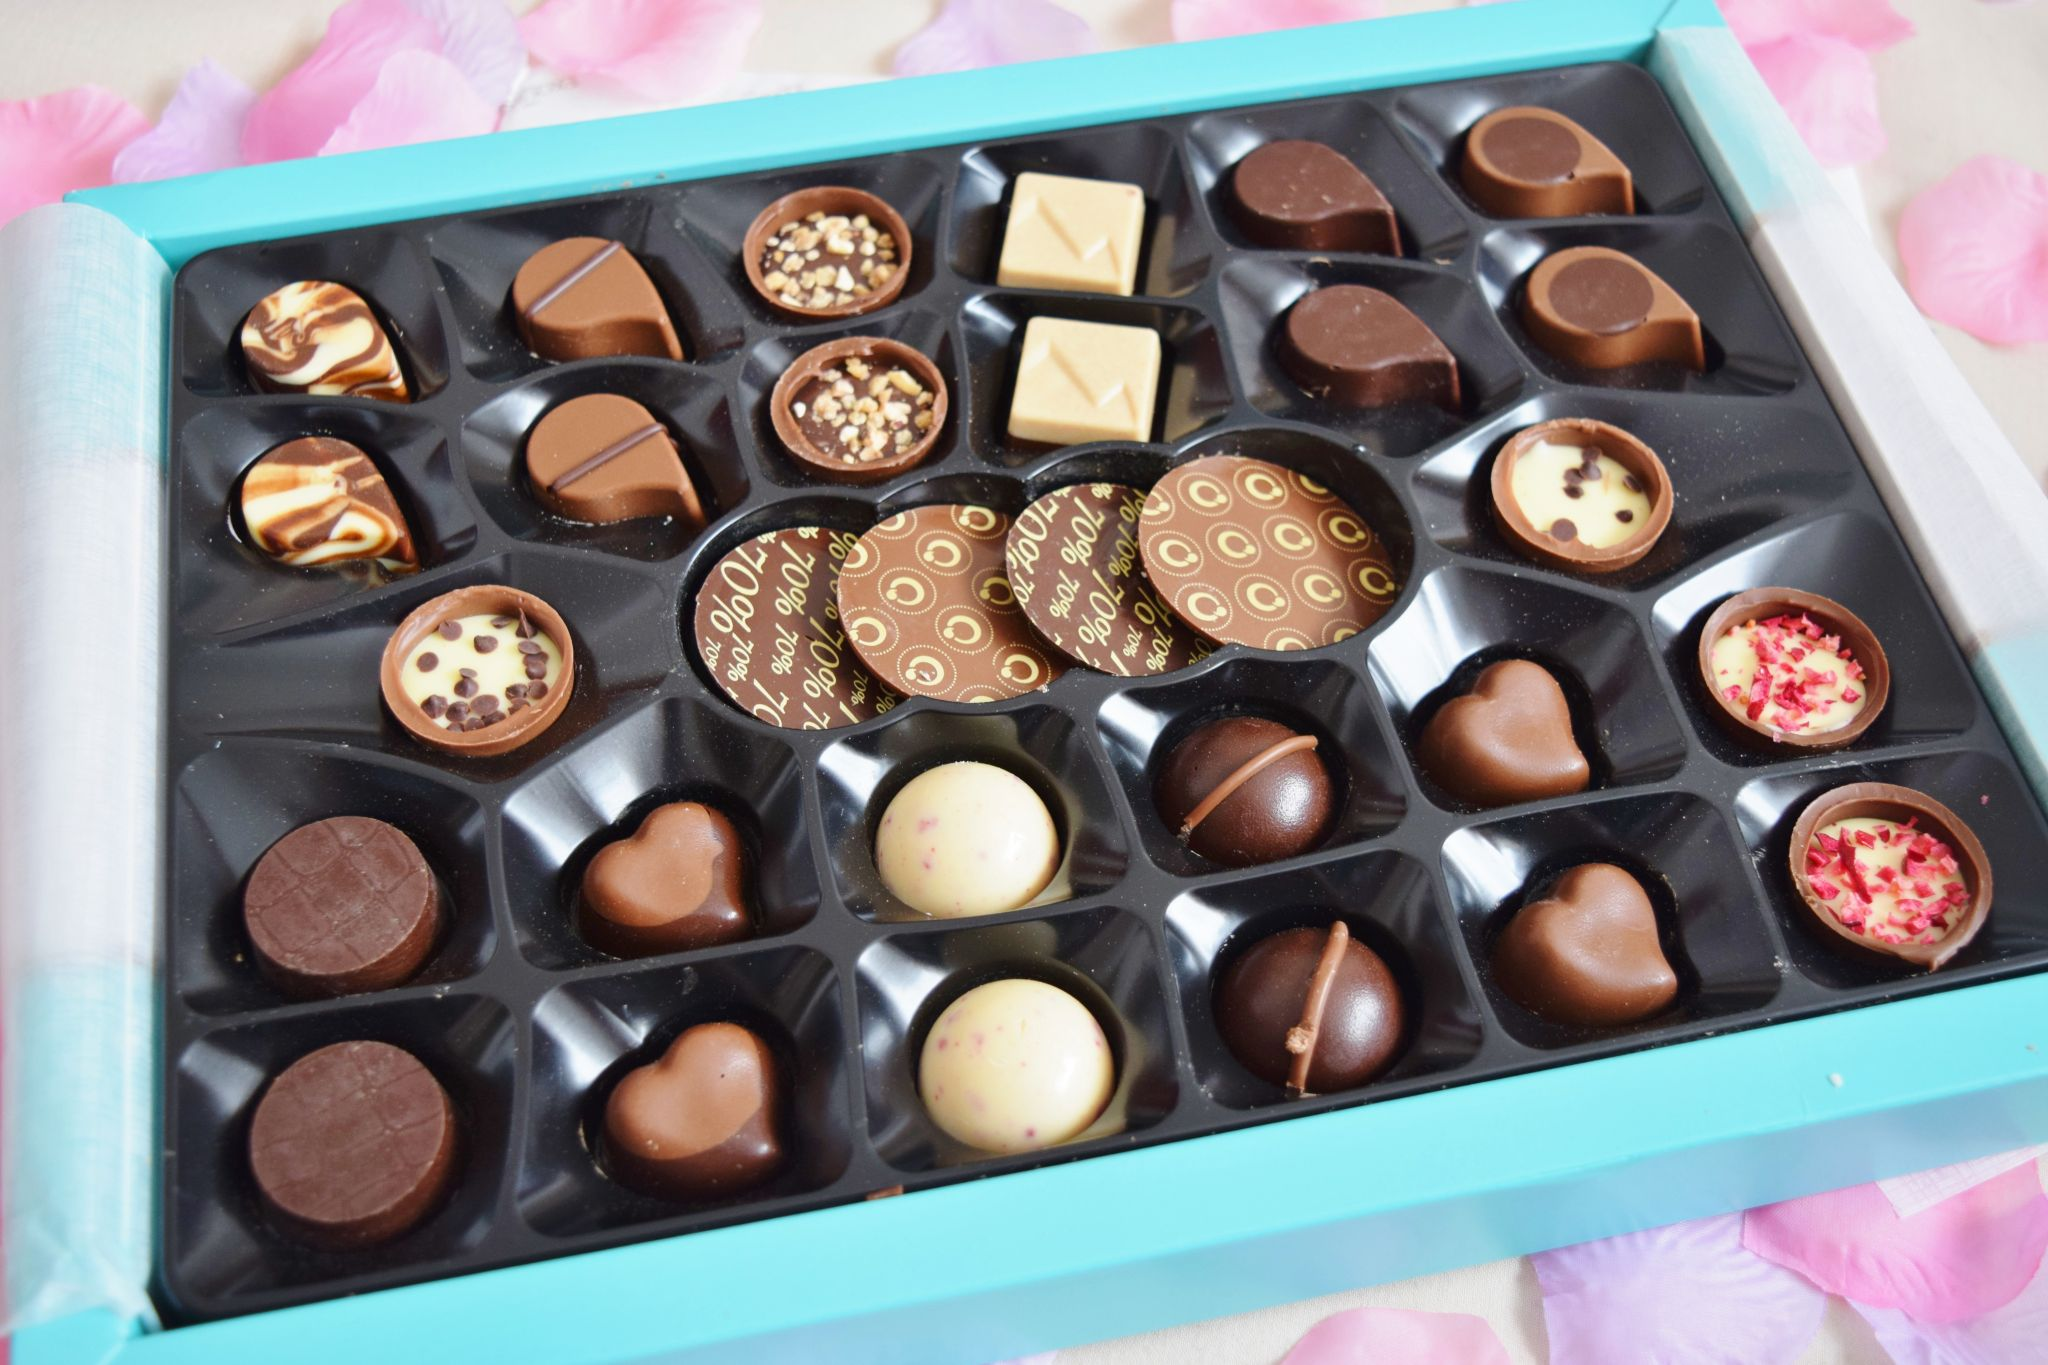 lily o'brien's the exquisite collection chocolates